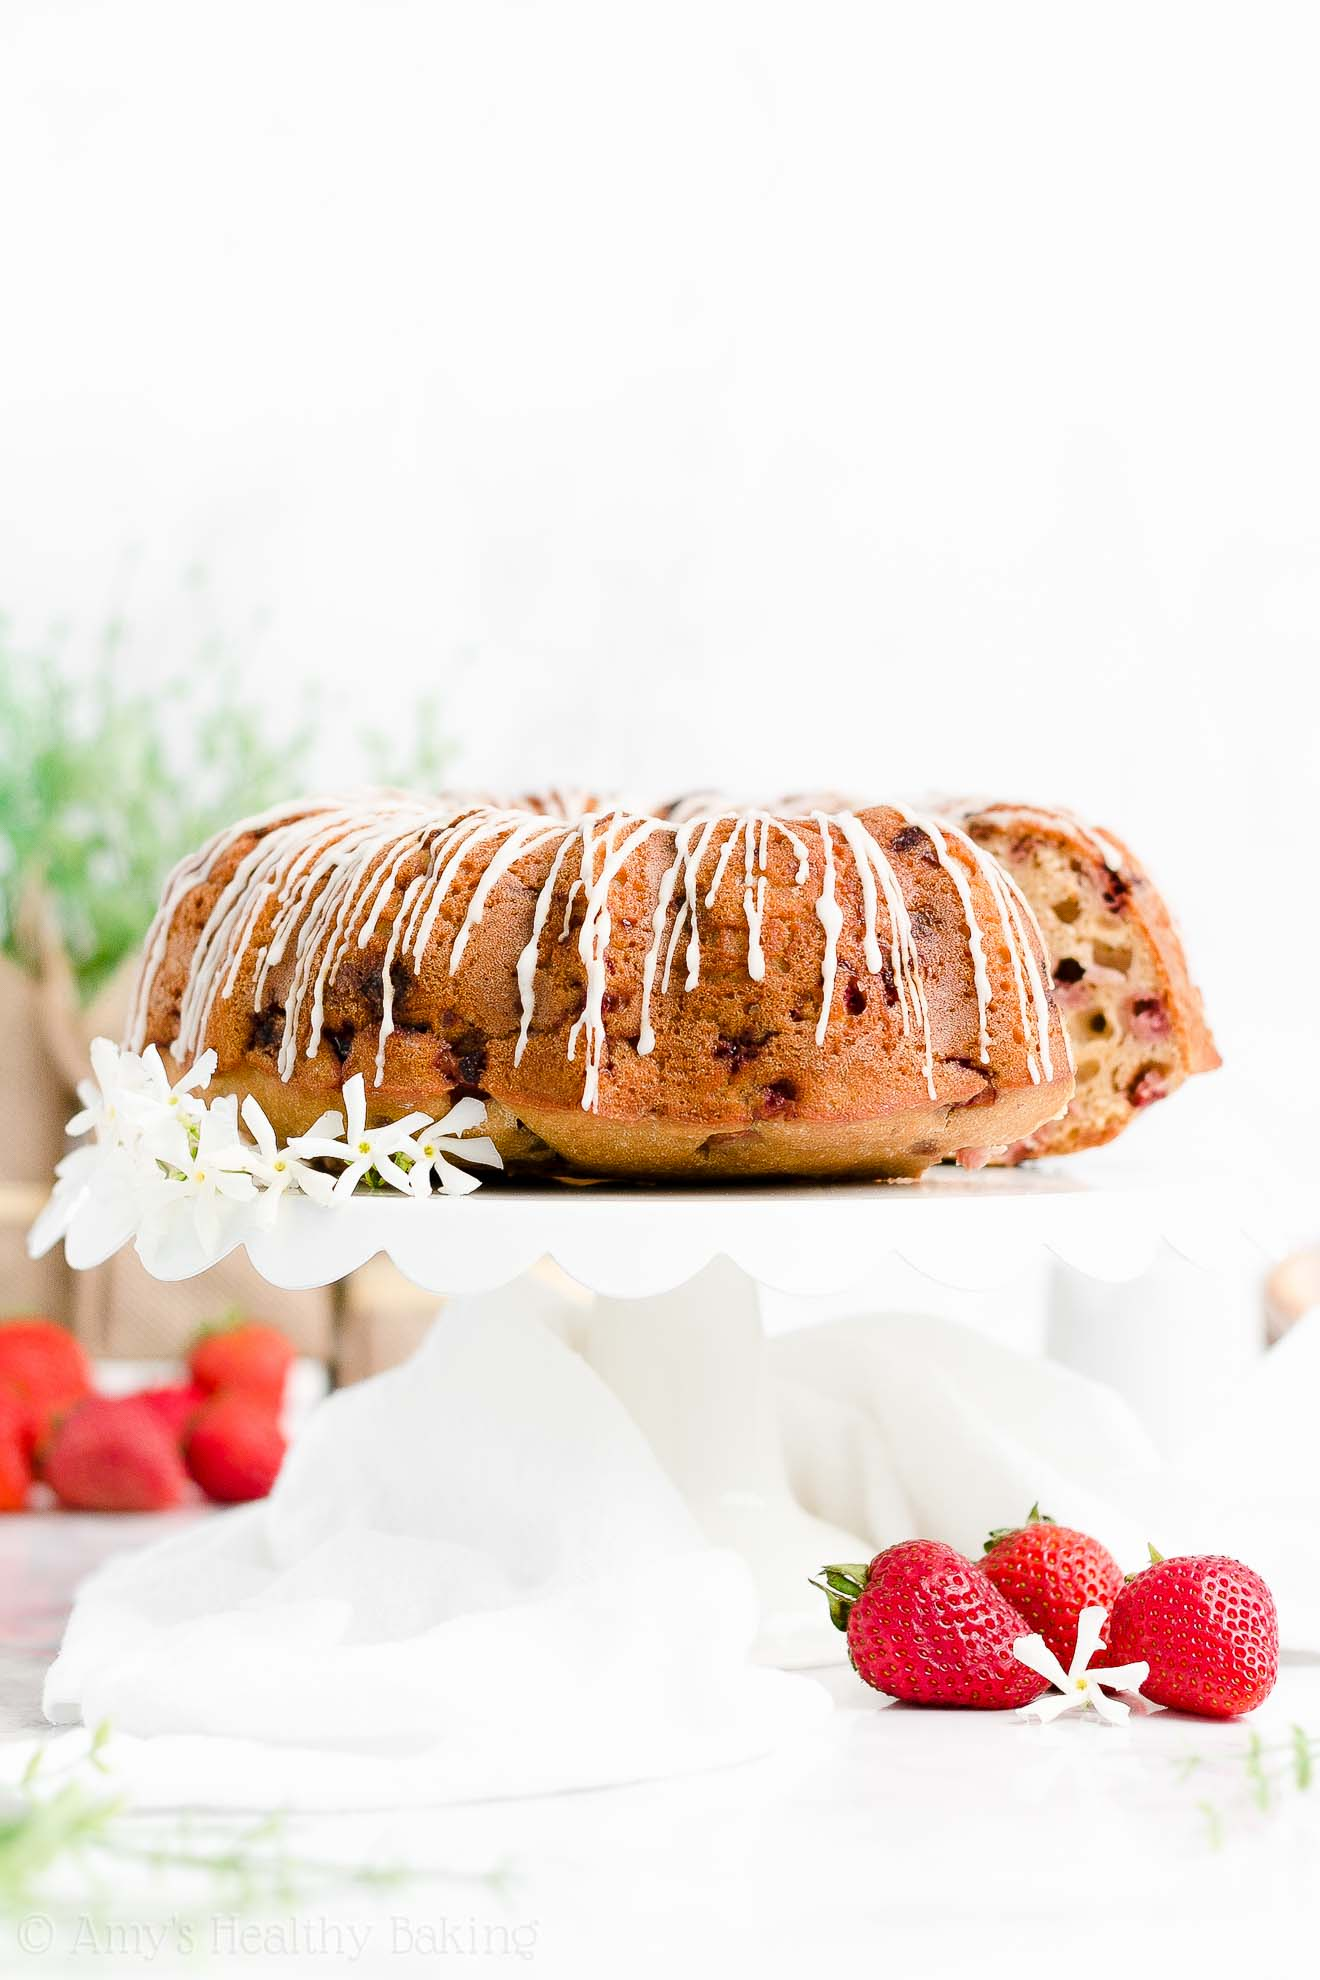 Best Easy Healthy Sugar Free Gluten Free Greek Yogurt Strawberry Bundt Cake